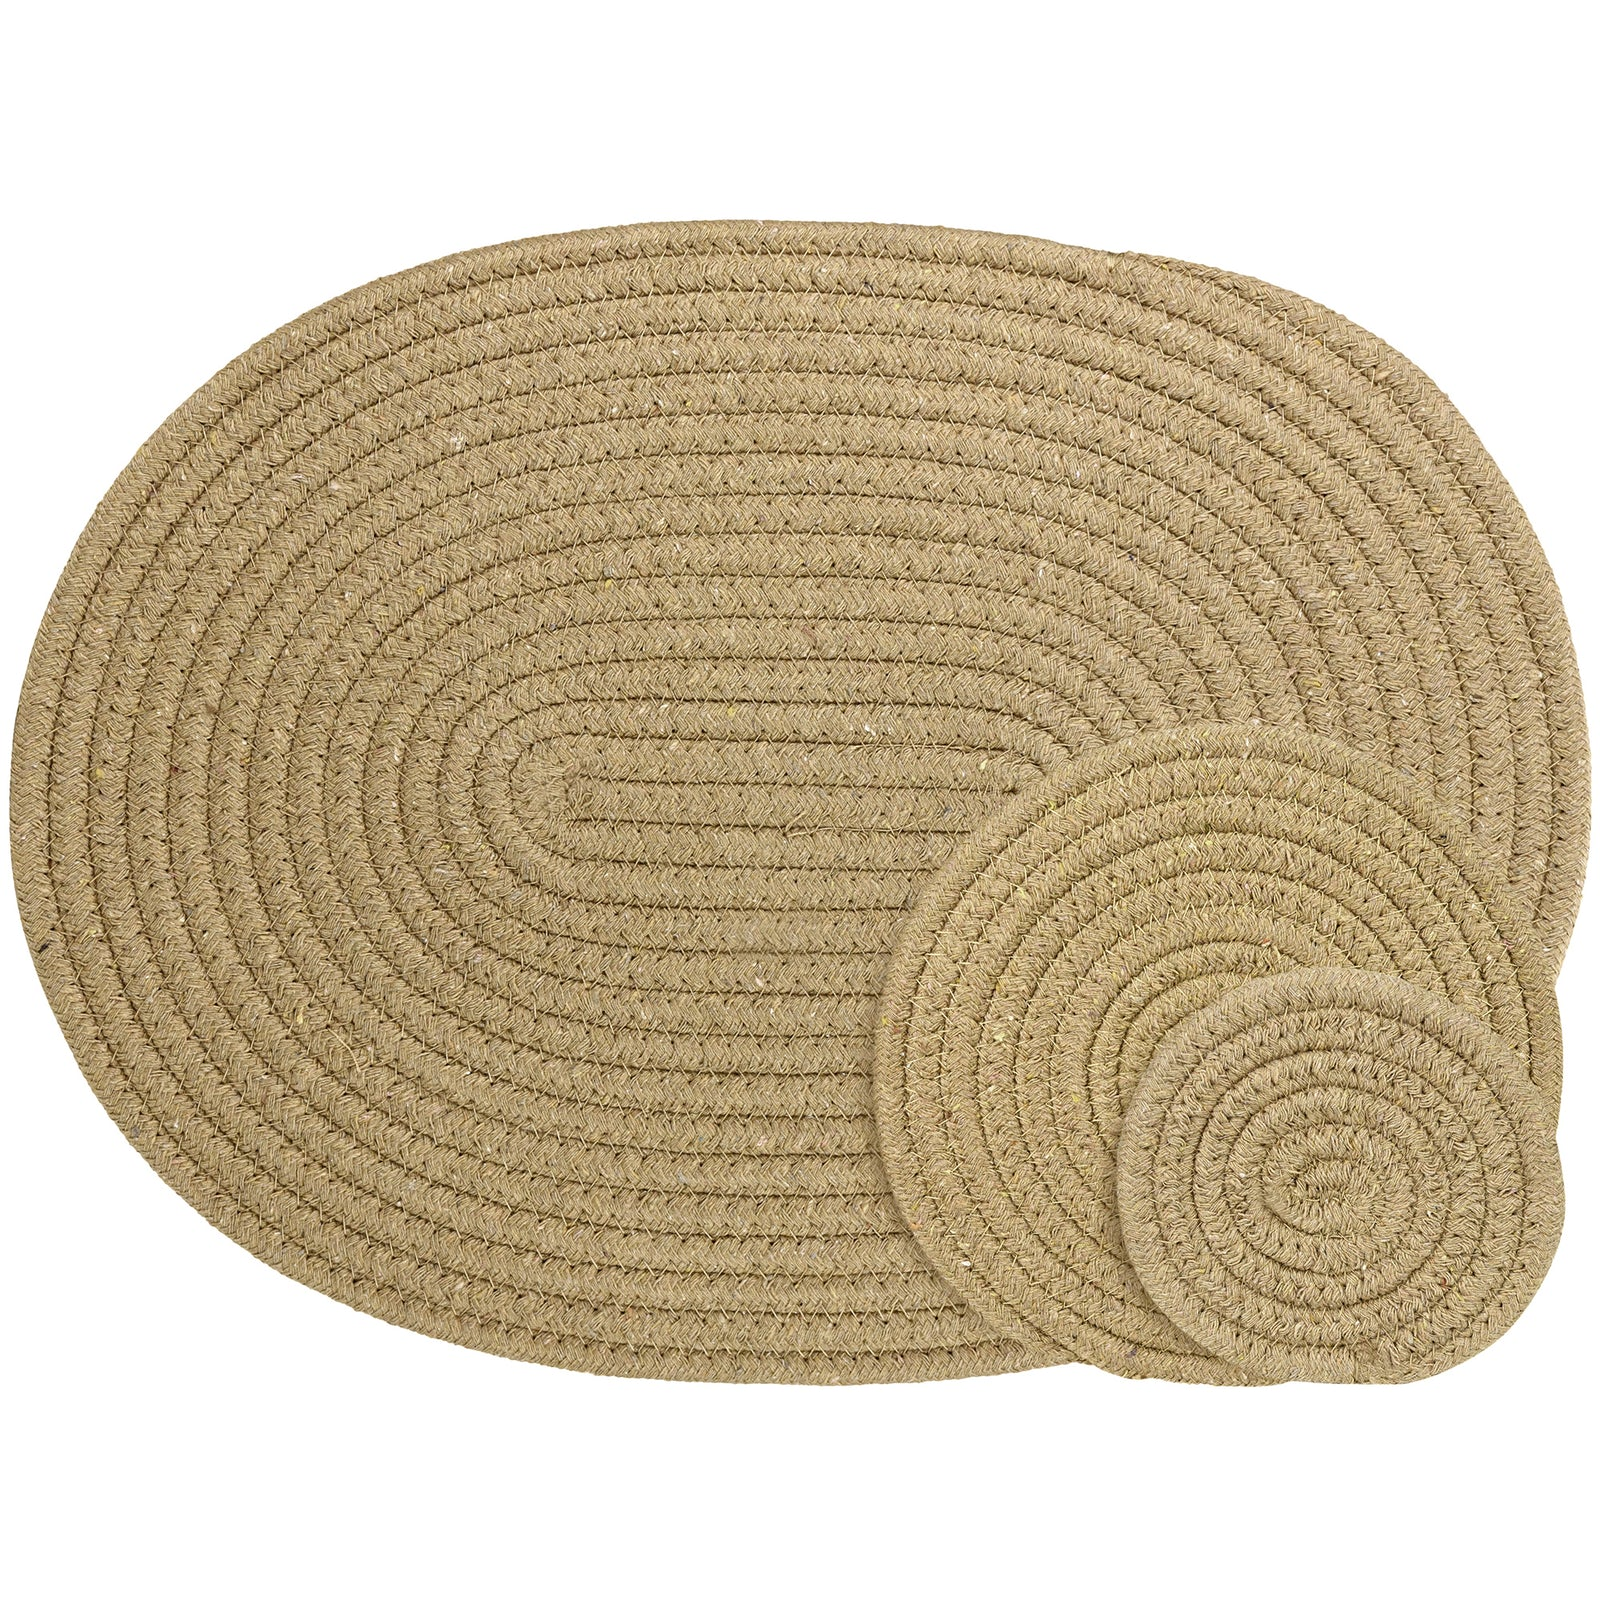 Brown Woven Cotton Placemat and Coaster Set